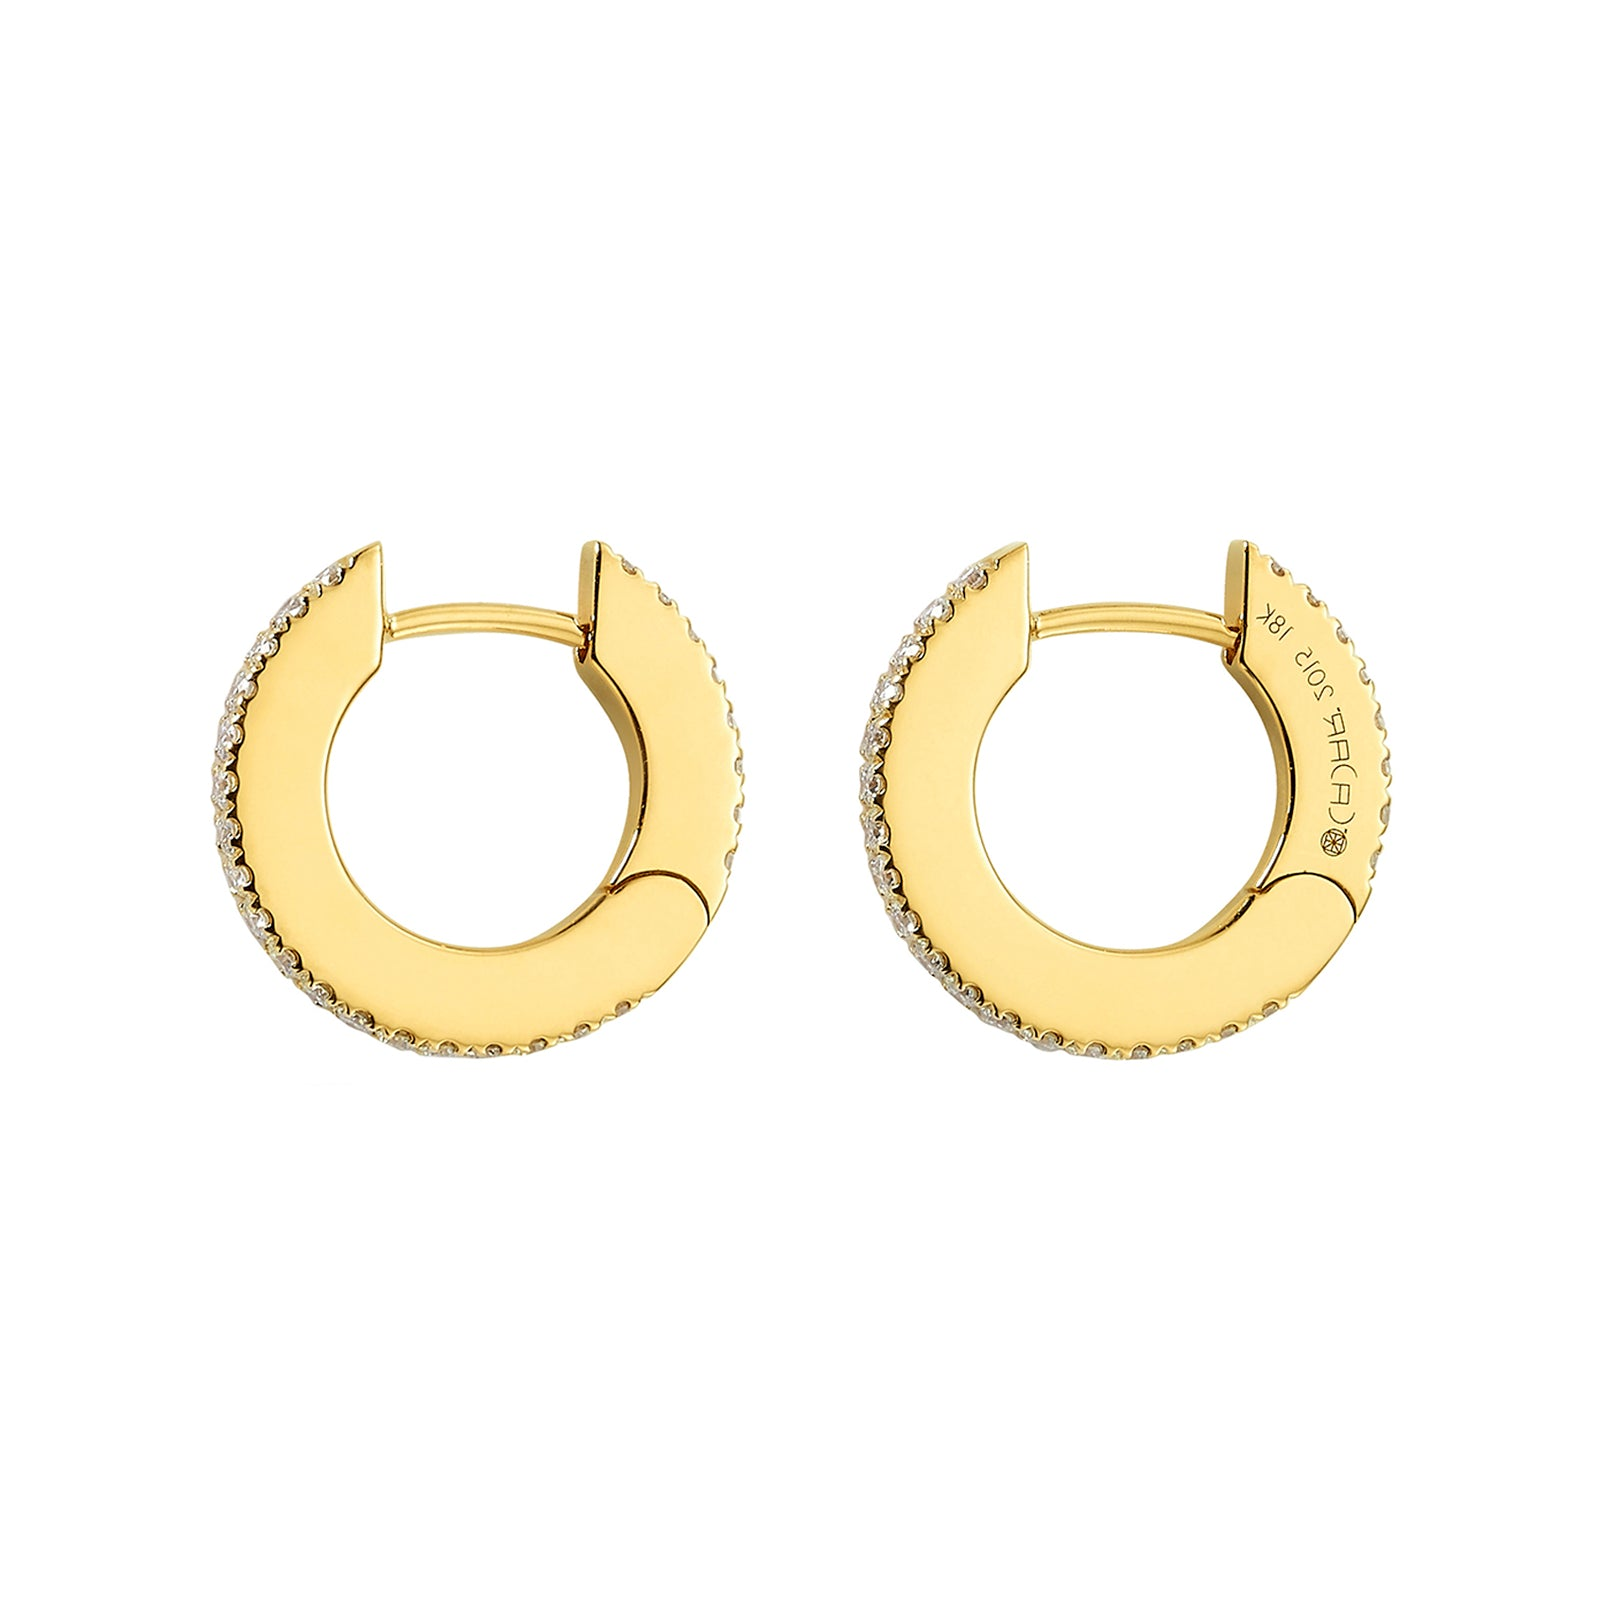 Cadar Small Solo Hoop Earrings - Earrings - Broken English Jewelry